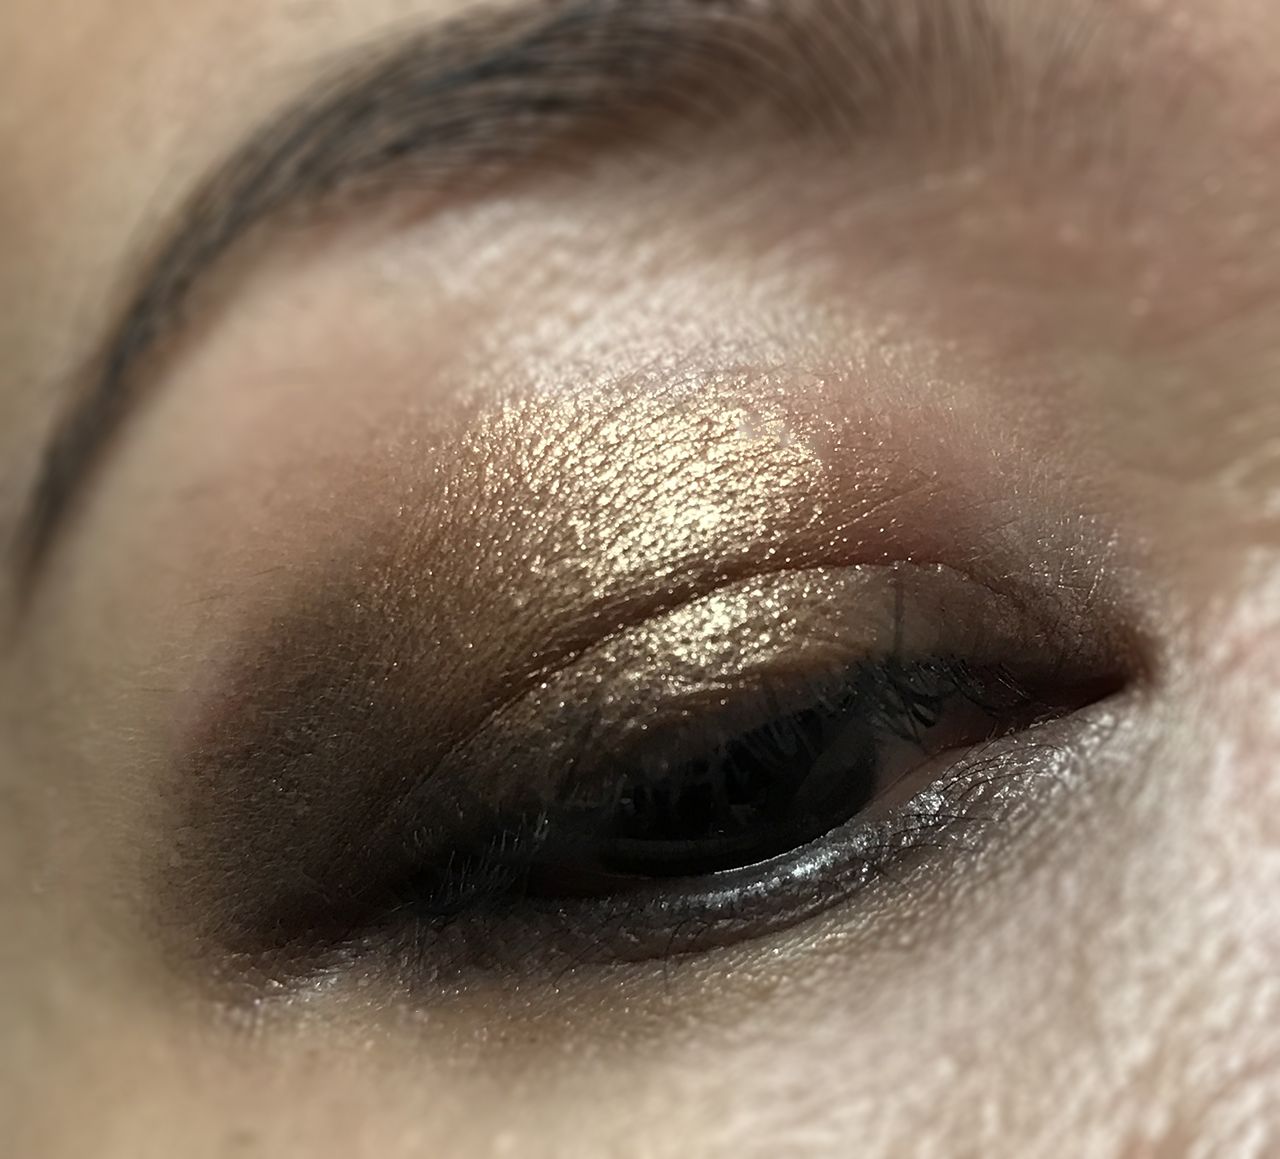 Marc Jacobs Eye-conic Multi-finish Eye Palette Glambition eye makeup look